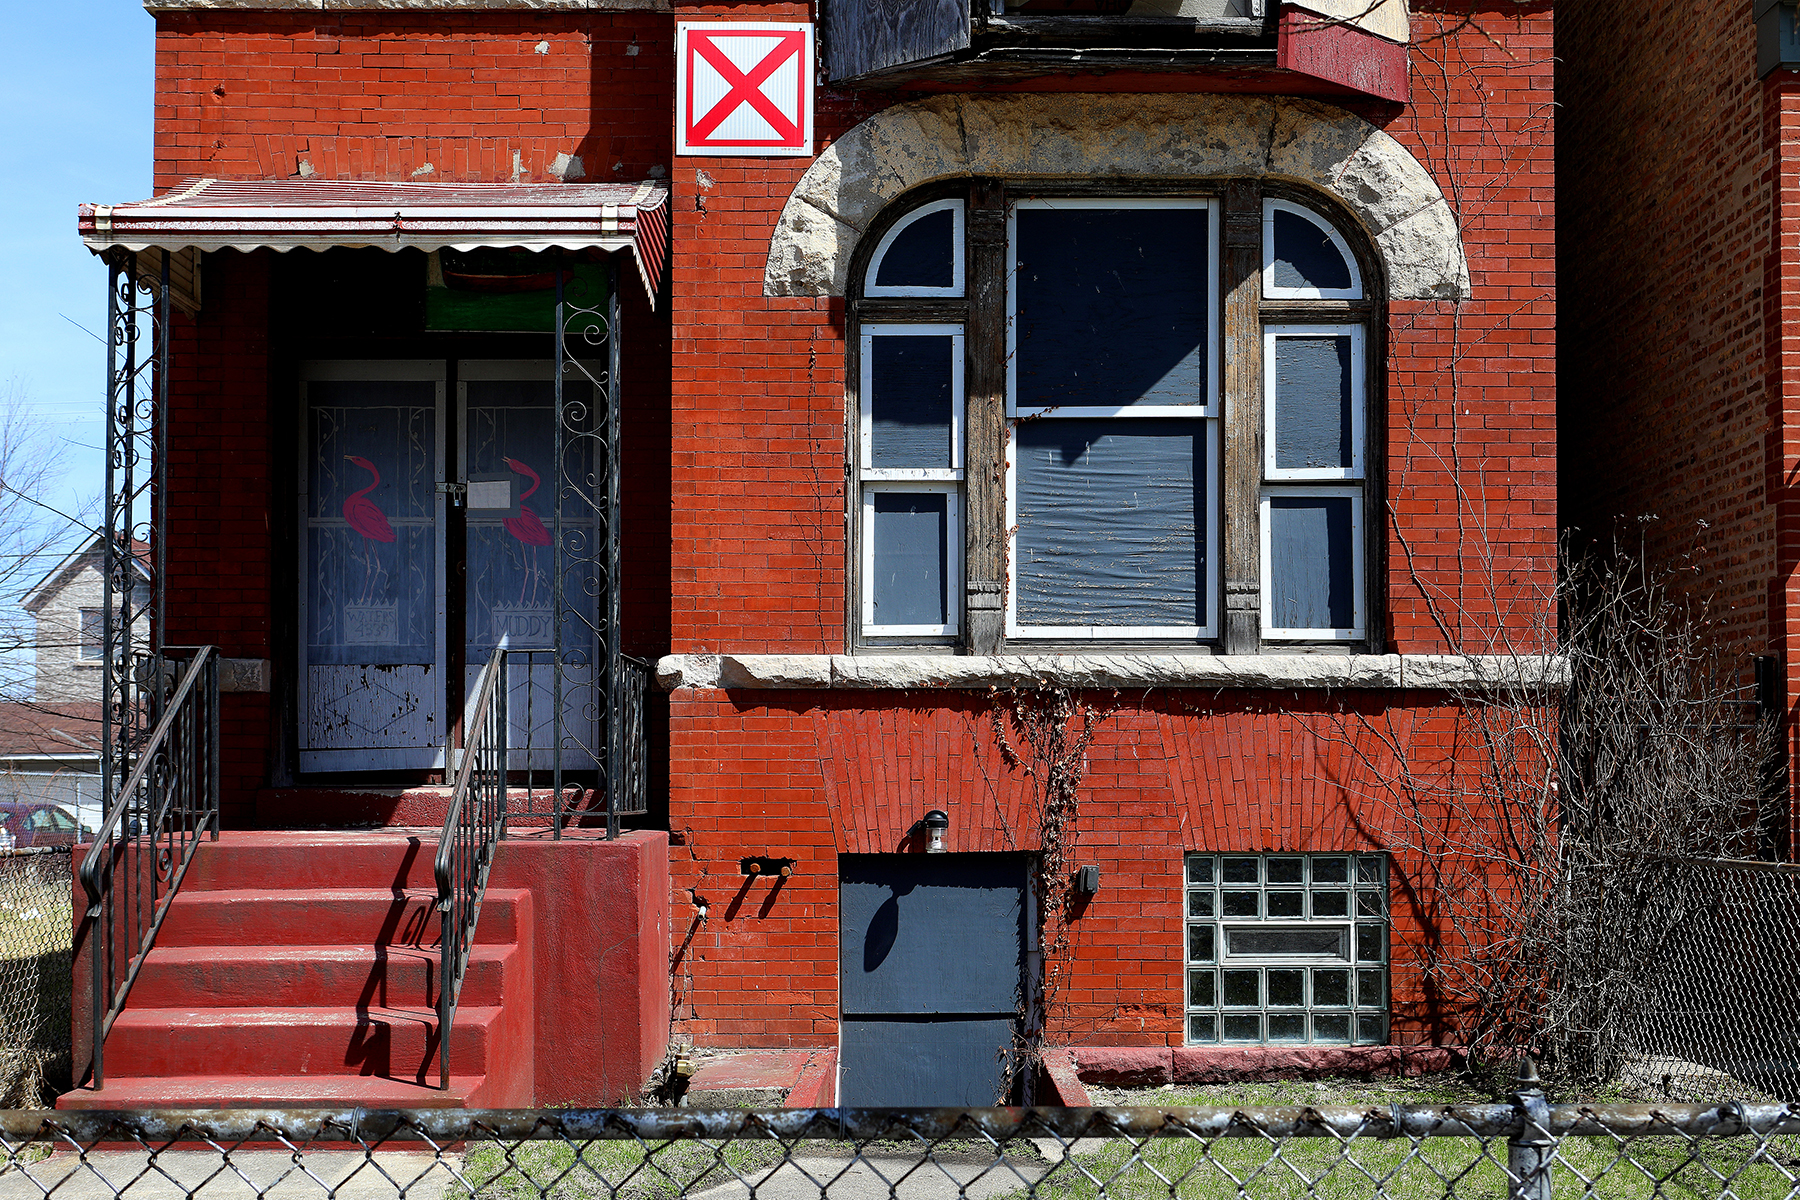 CHICAGO - April 08:  Blues singer, songwriter and musician McKinley 'Muddy Waters' Morganfield, moved into this home in 1954 in Chicago, Illinois on April 8, 2019.  (Photo By Raymond Boyd/Getty Images)